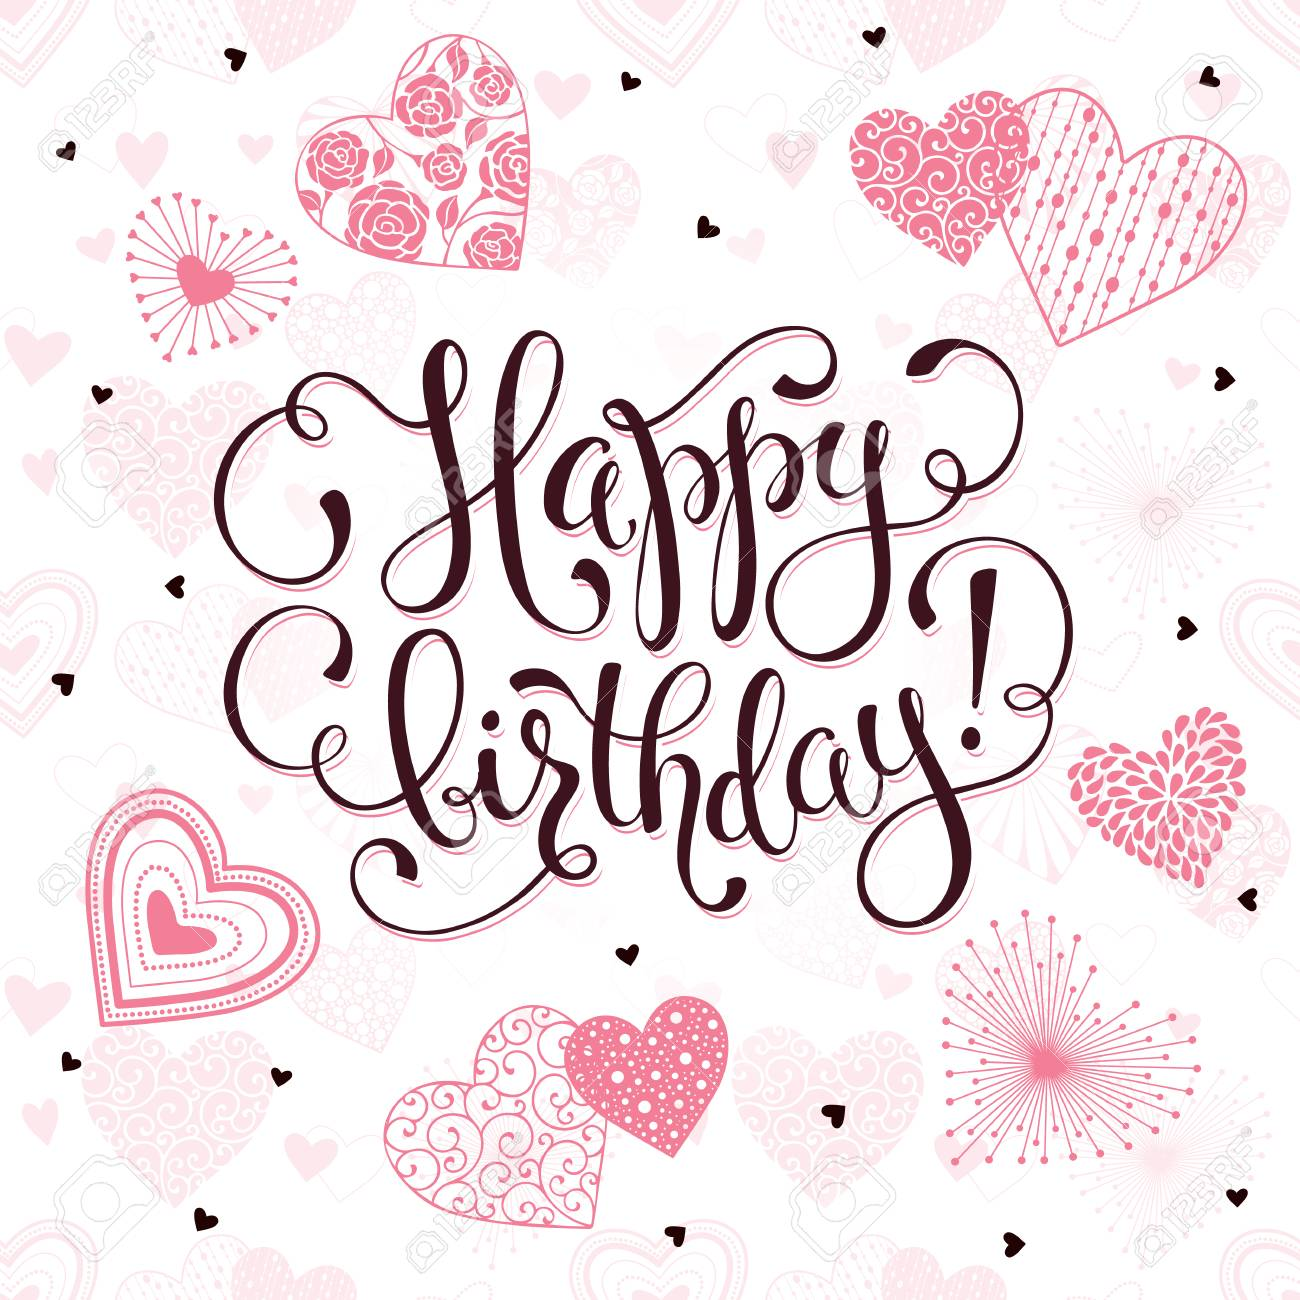 Happy Birthday Greeting Card Romantic Hearts With Calligraphic